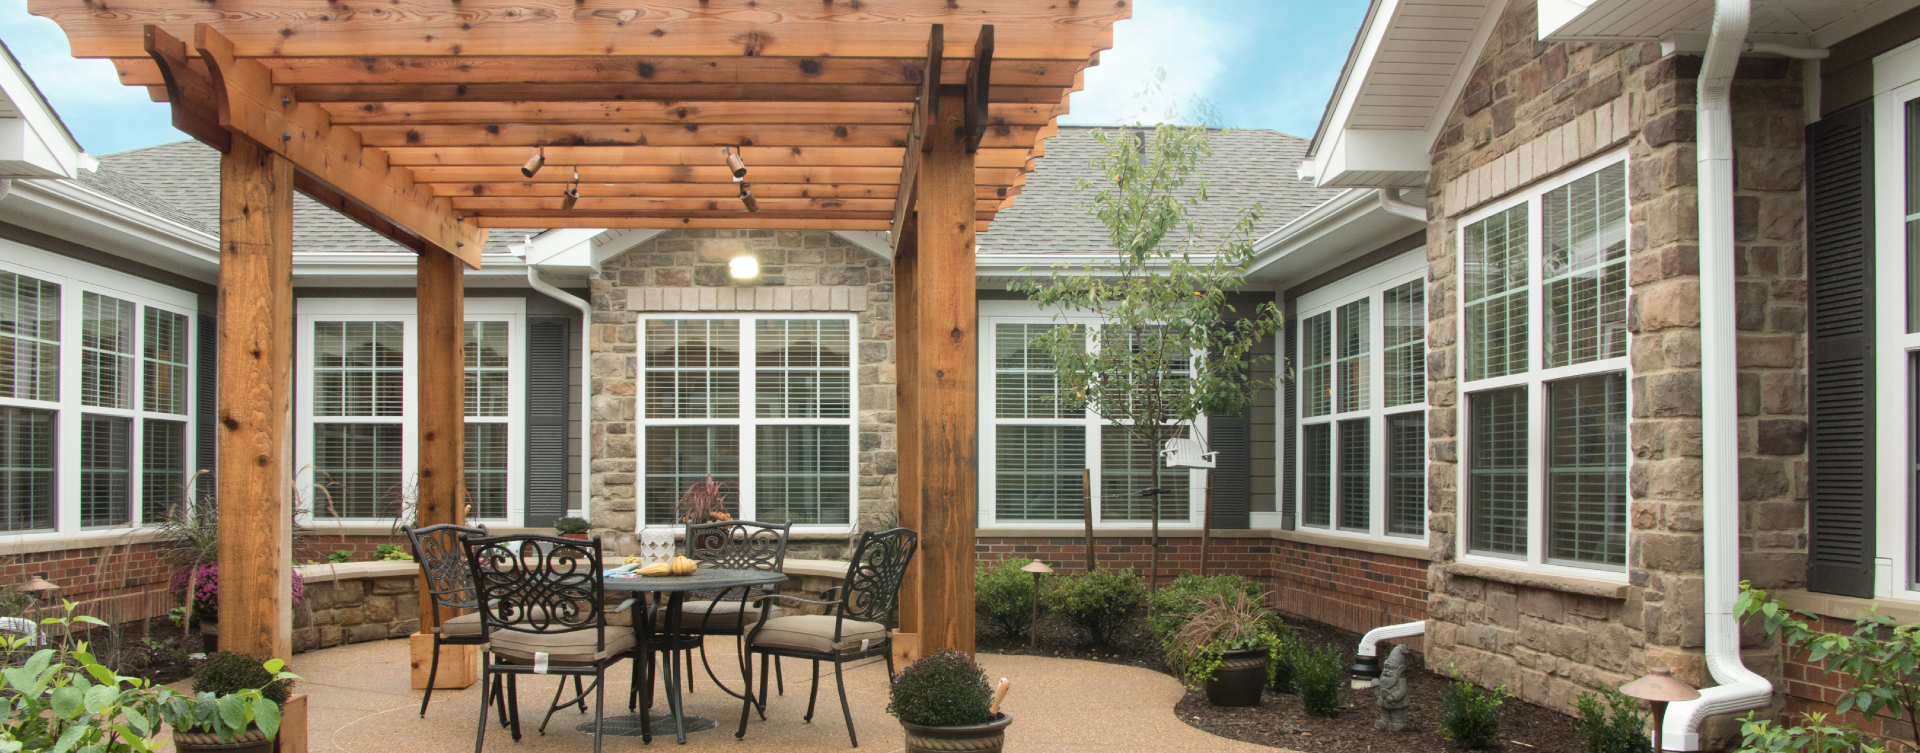 Residents with dementia can enjoy a traveling path, relaxed seating and raised garden beds in the courtyard at Bickford of Spotsylvania